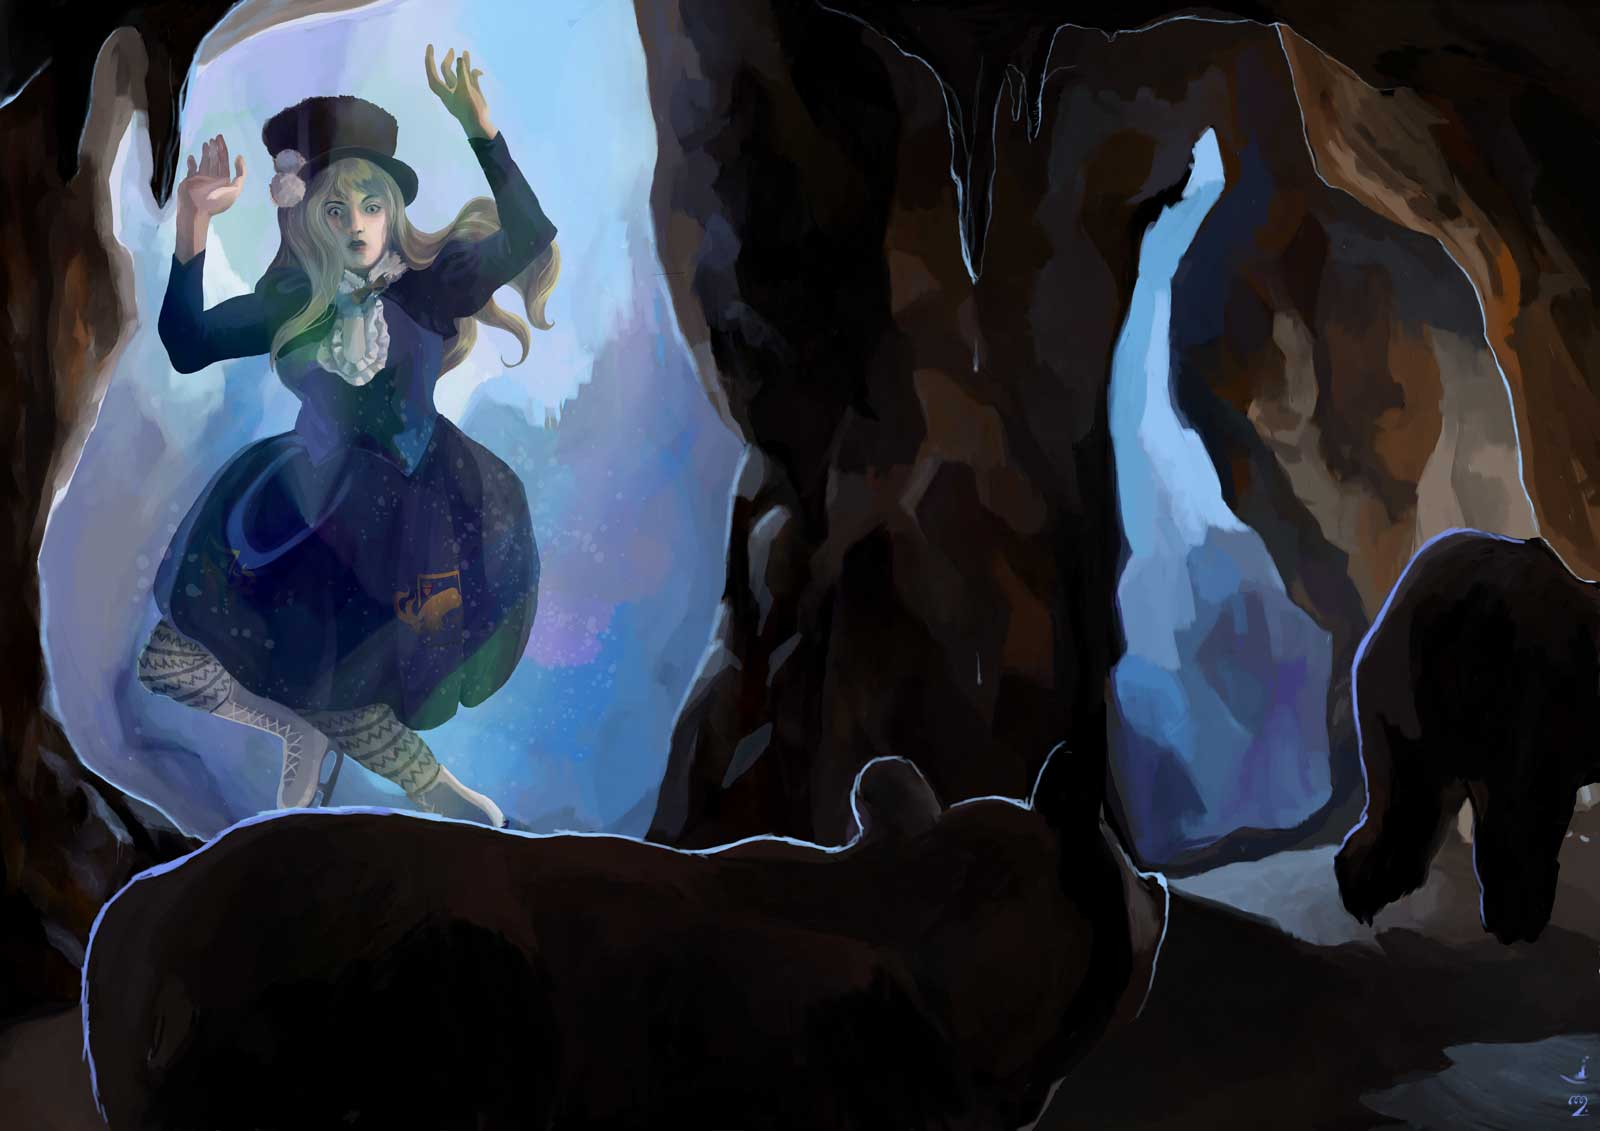 A ice-skater lolita that has become prisoner of ice is seen through 'windows' in a cave inhabited with bears.